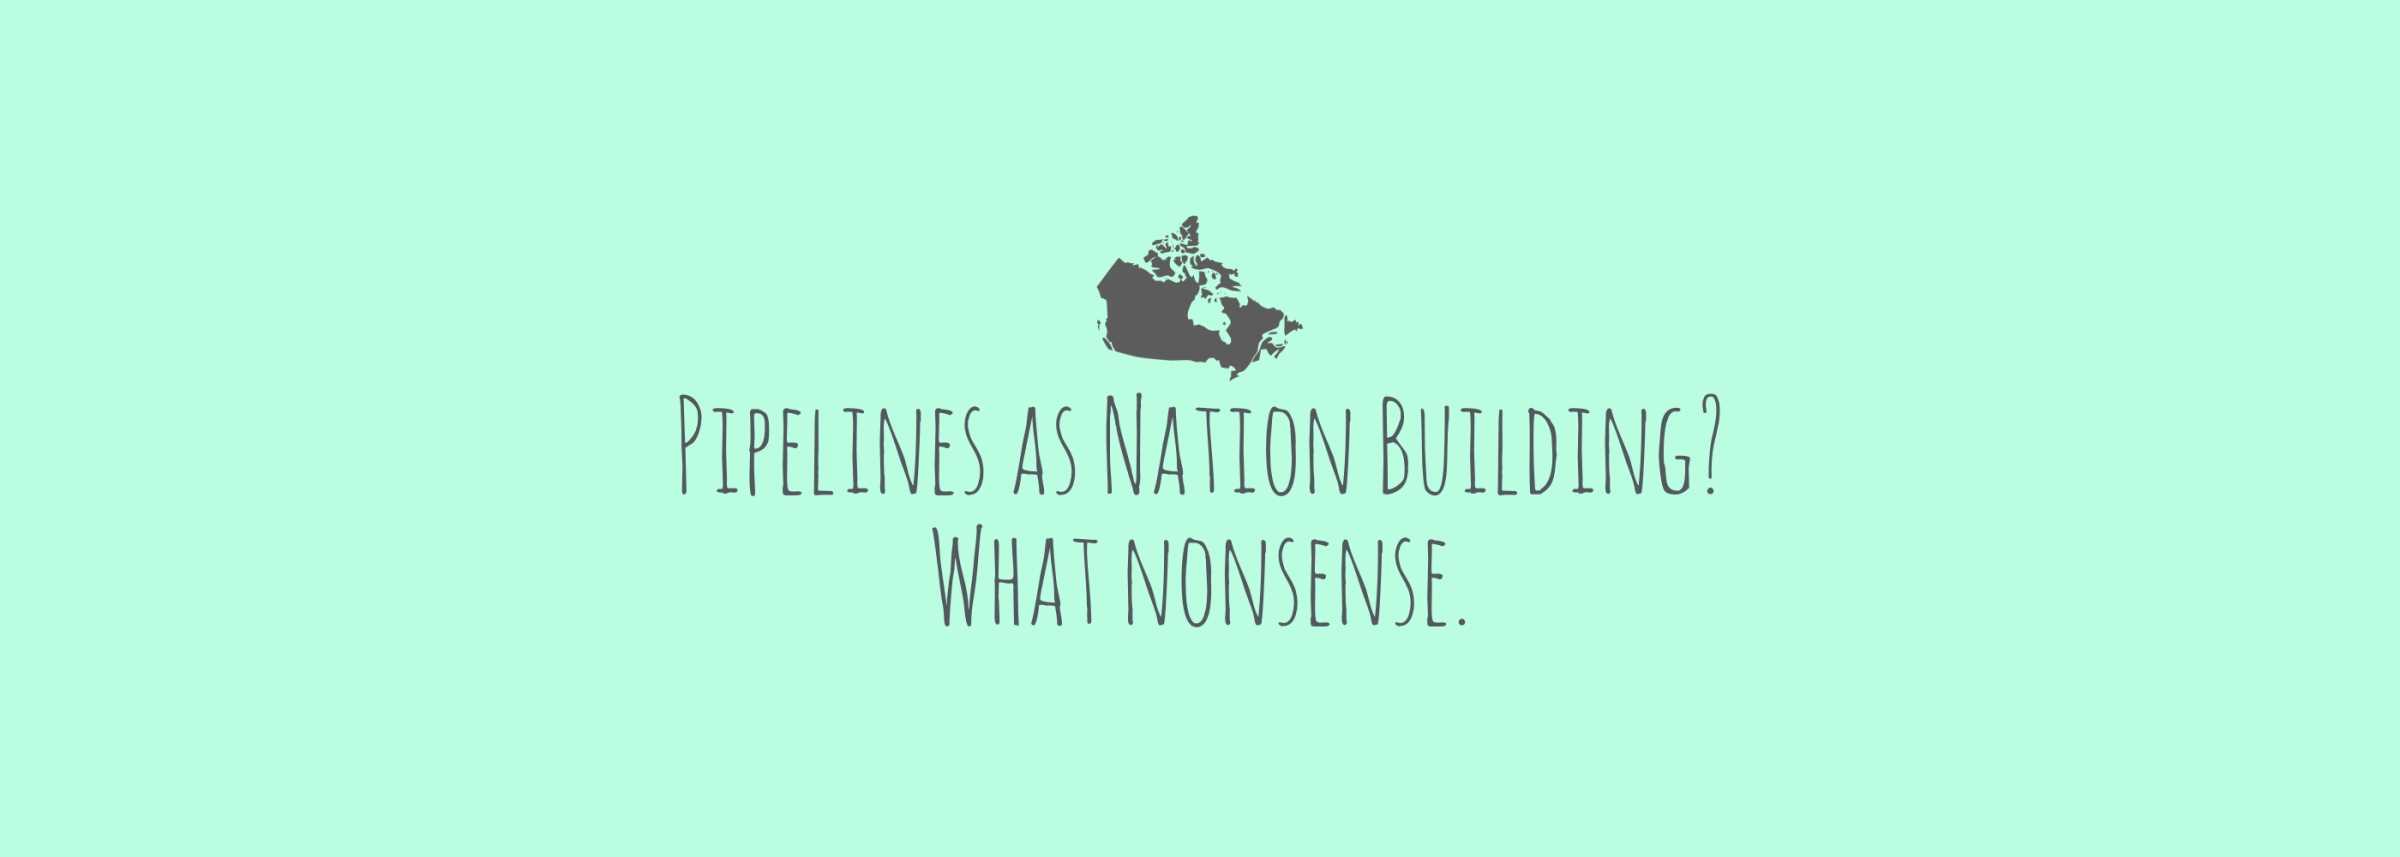 Pipelines Nation Building.001